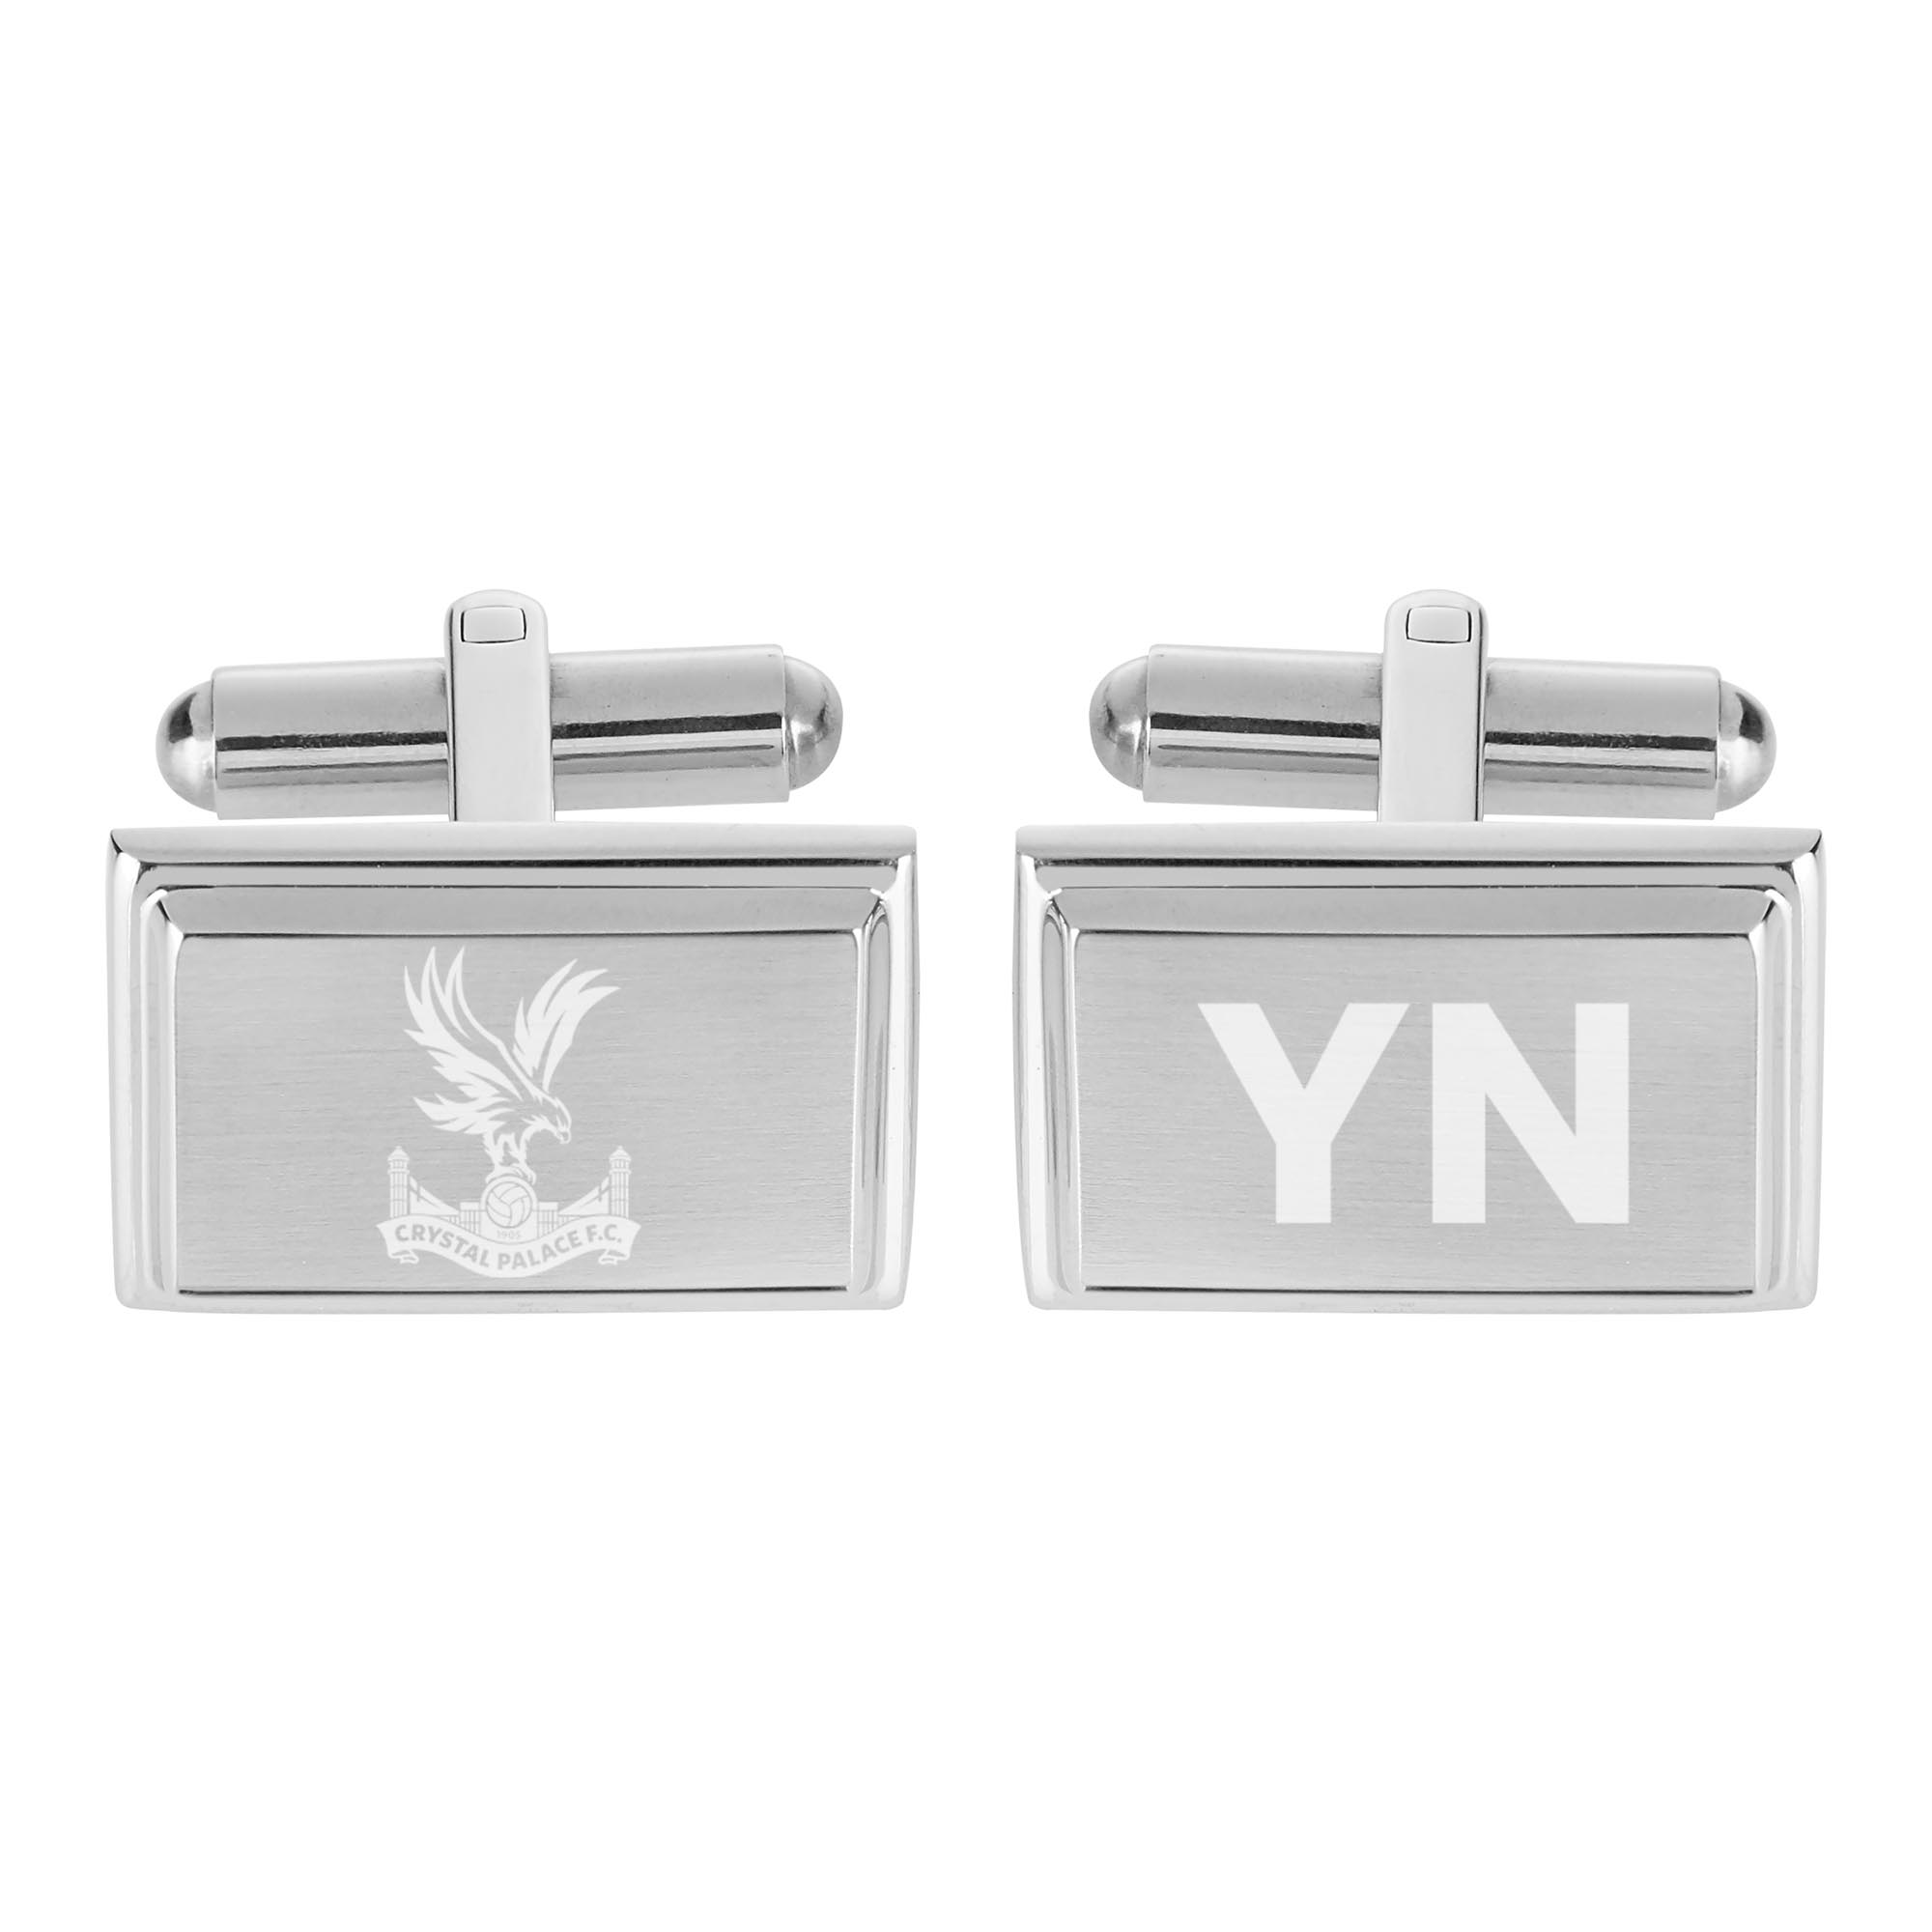 Crystal Palace FC Crest Cufflinks